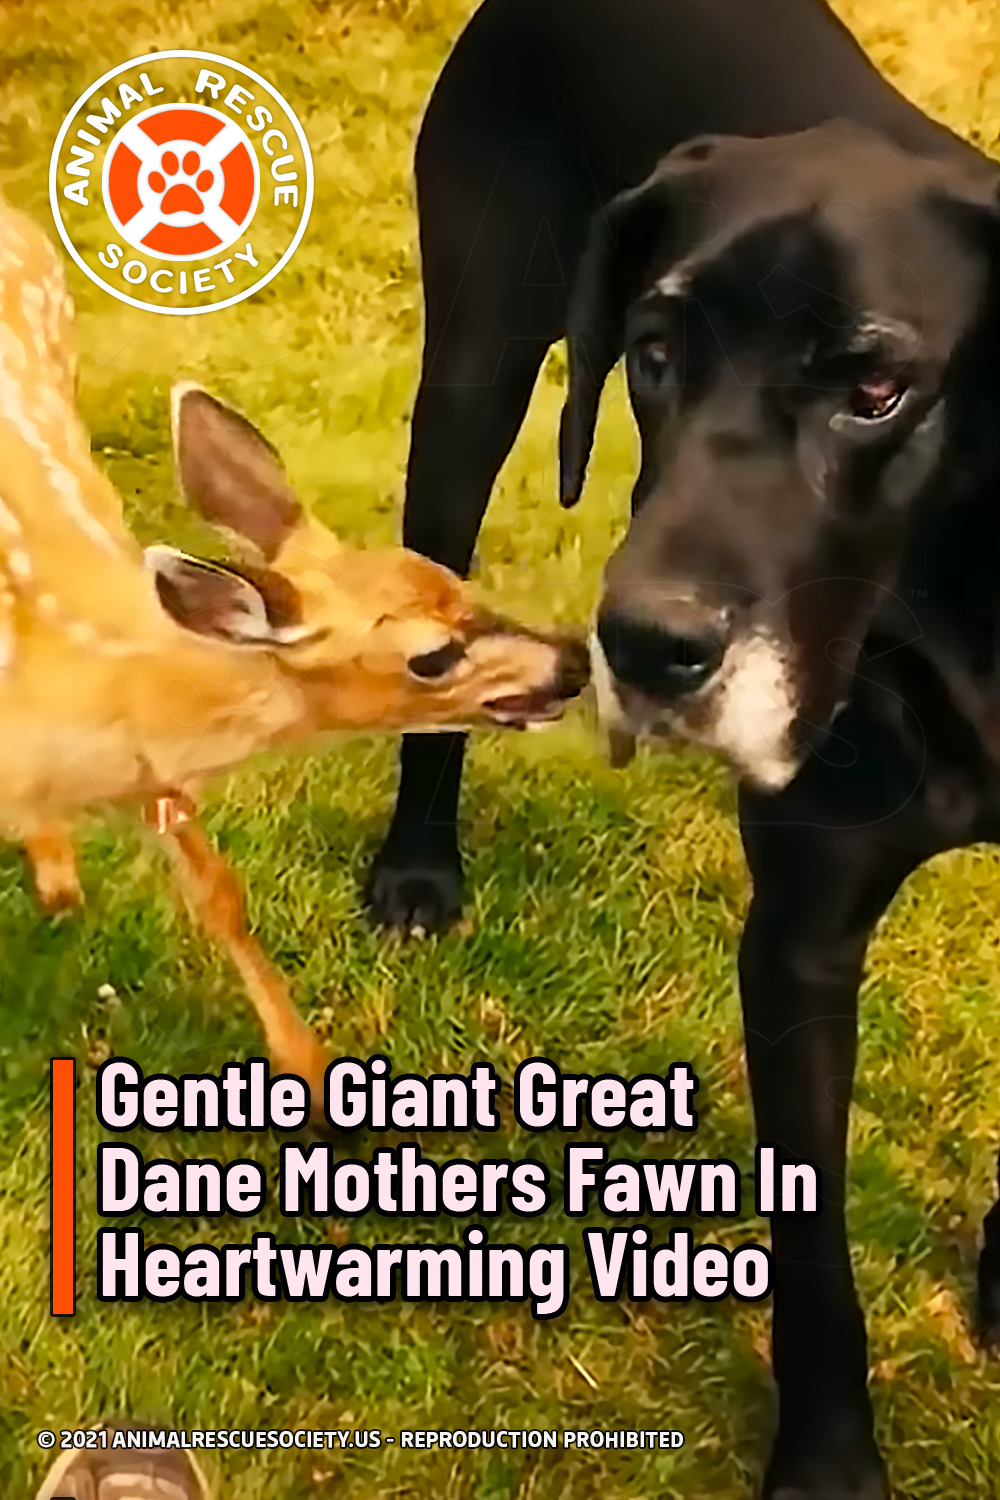 Gentle Giant Great Dane Mothers Fawn In Heartwarming Video